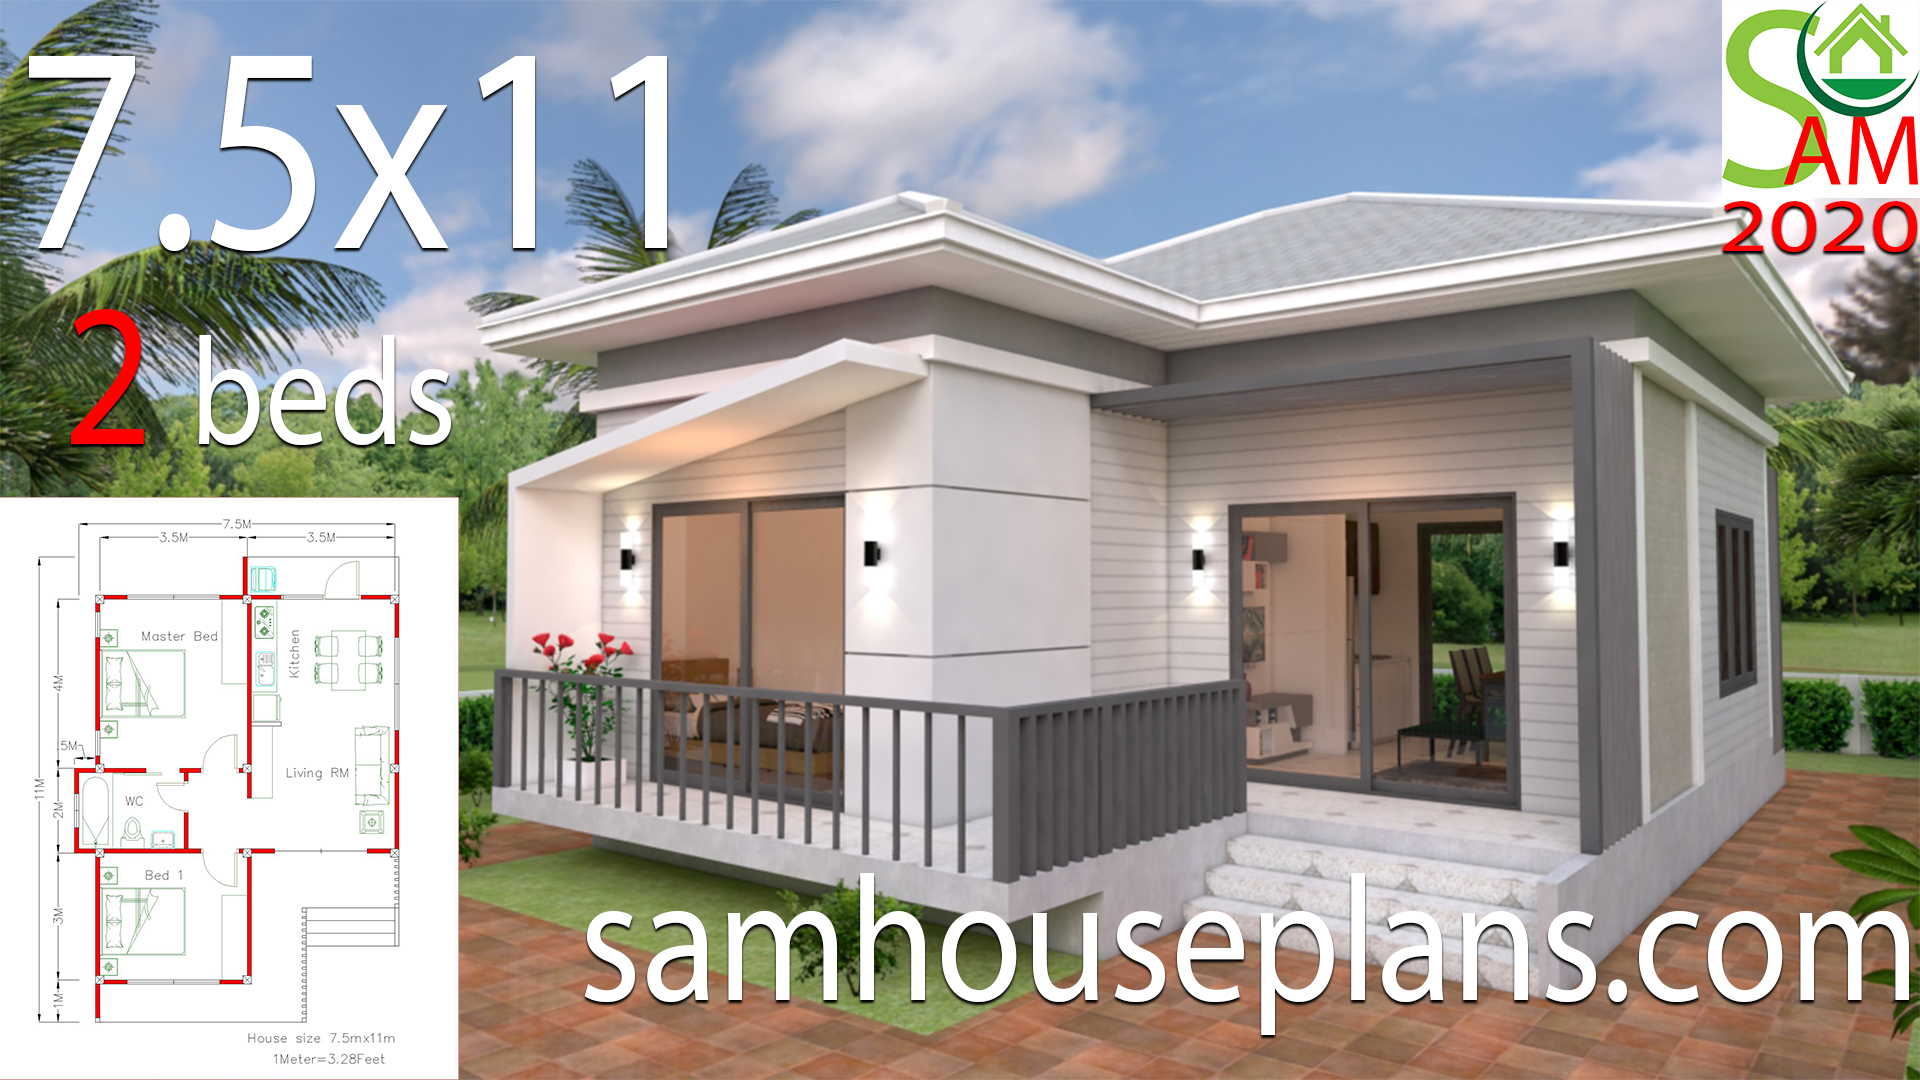 Small House Plans 7.5x11 with 2 Bedrooms Hip roof - Get Small Double Bedroom House Design Background